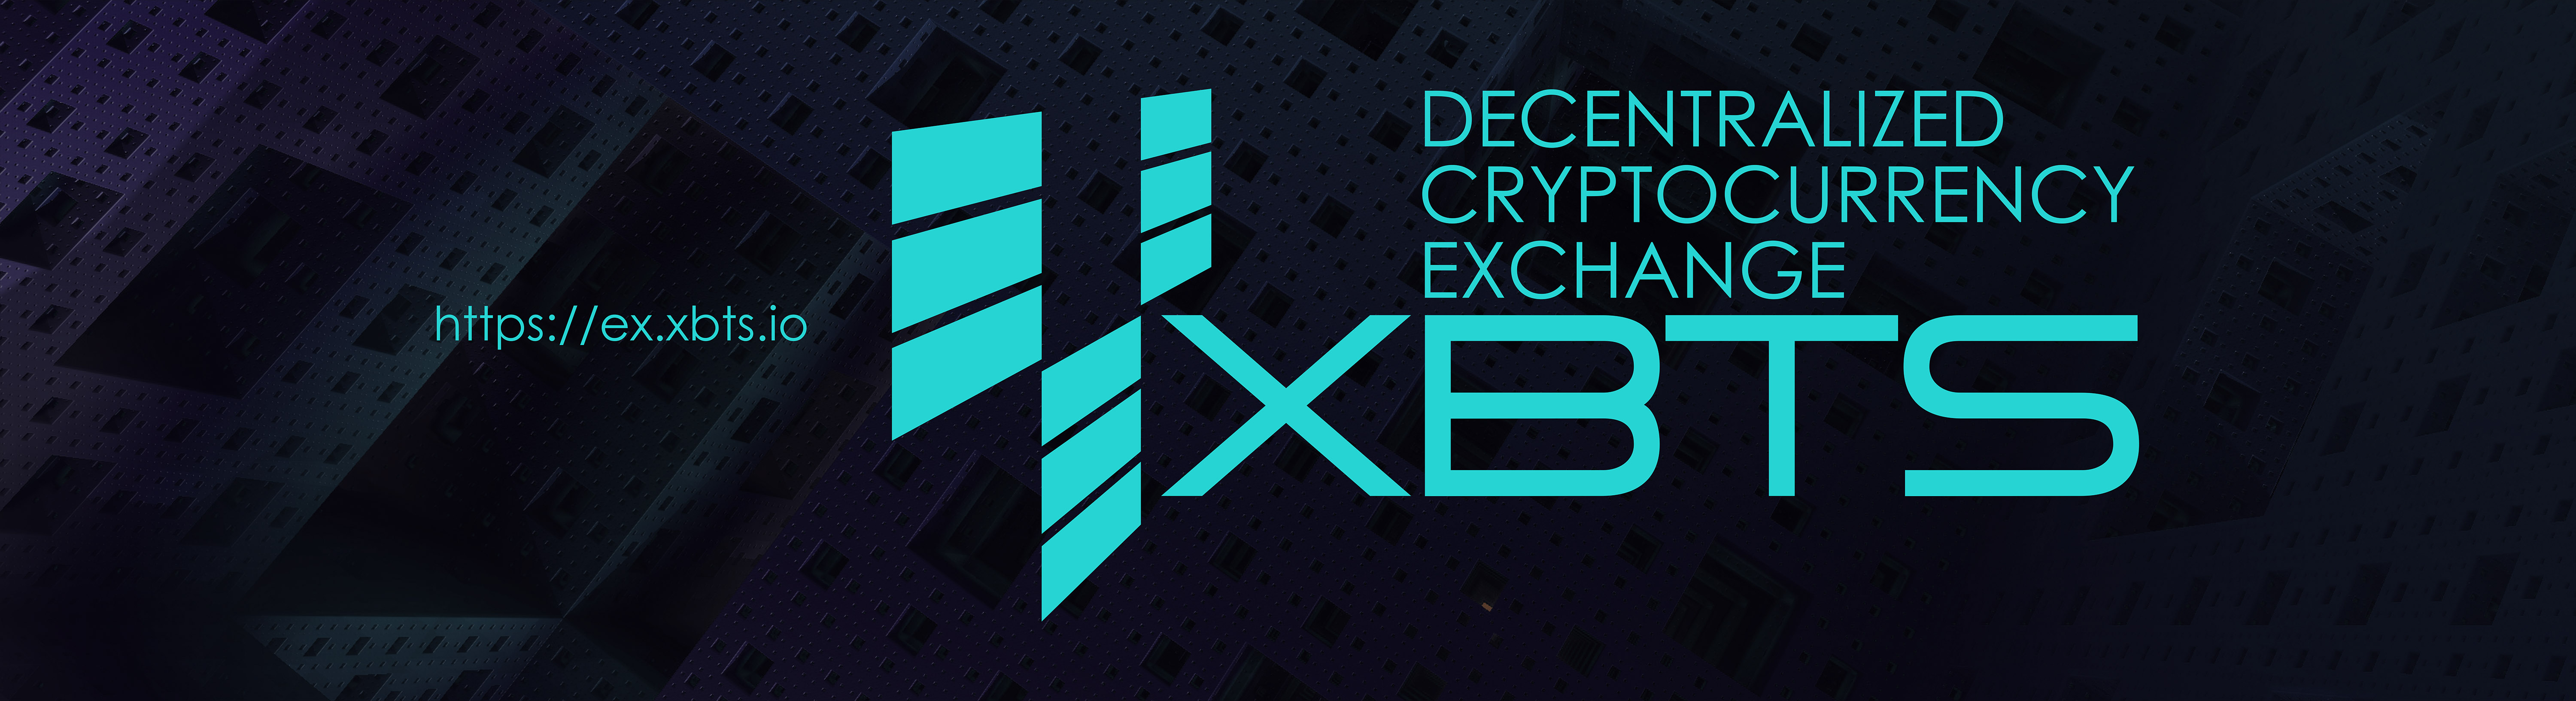 XBTS  DEX for everyone who wants to simply and secure buy and sell Bitcoins or Altcoins. Instant buy/sell of cryptocurrency at fair price is blockchain guaranteed. Nothing extra.100.000 transactions per second. Confirmation time of just 3 seconds. Welcome!